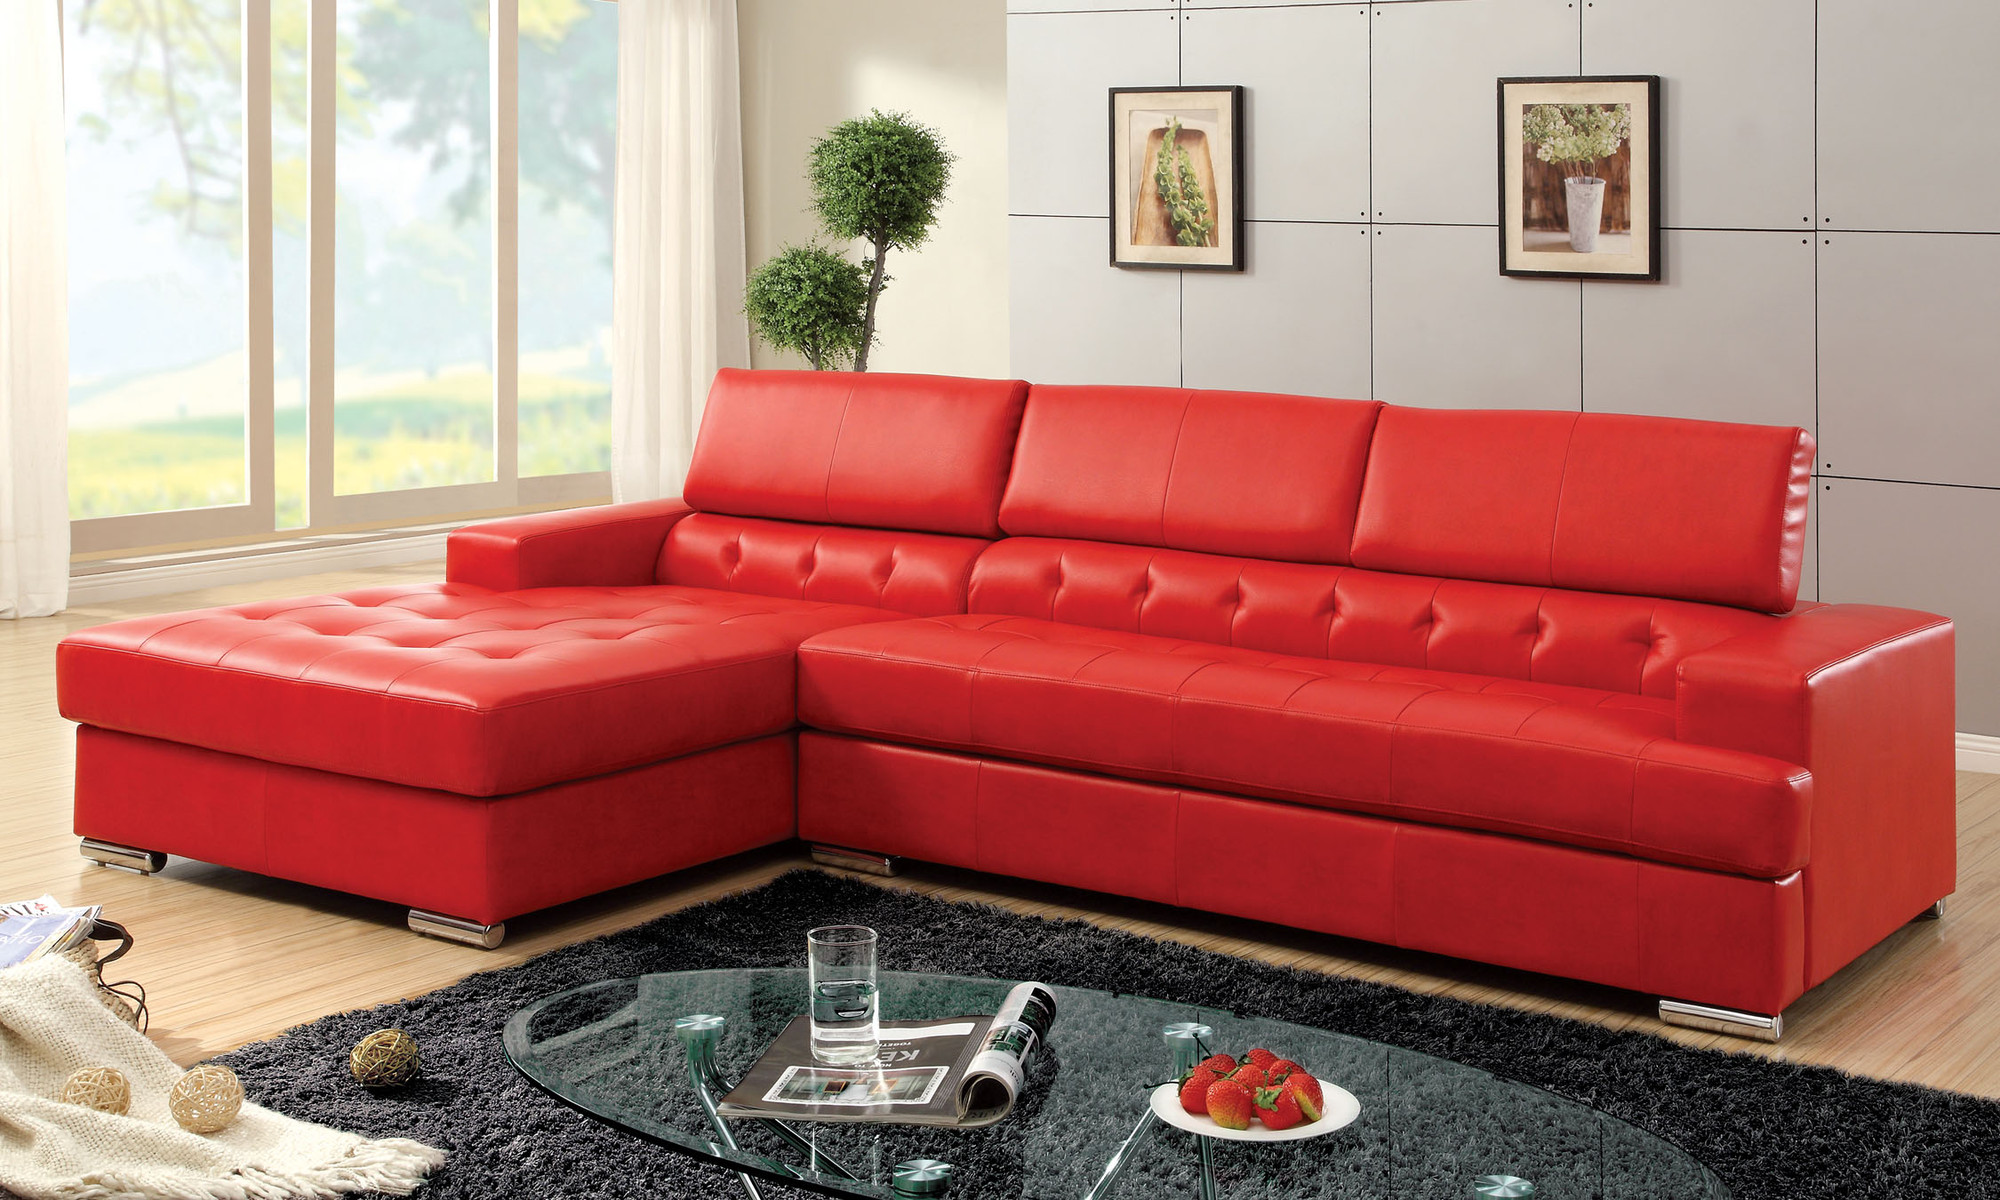 furniture-insteresting-red-tufted-leather-sofa